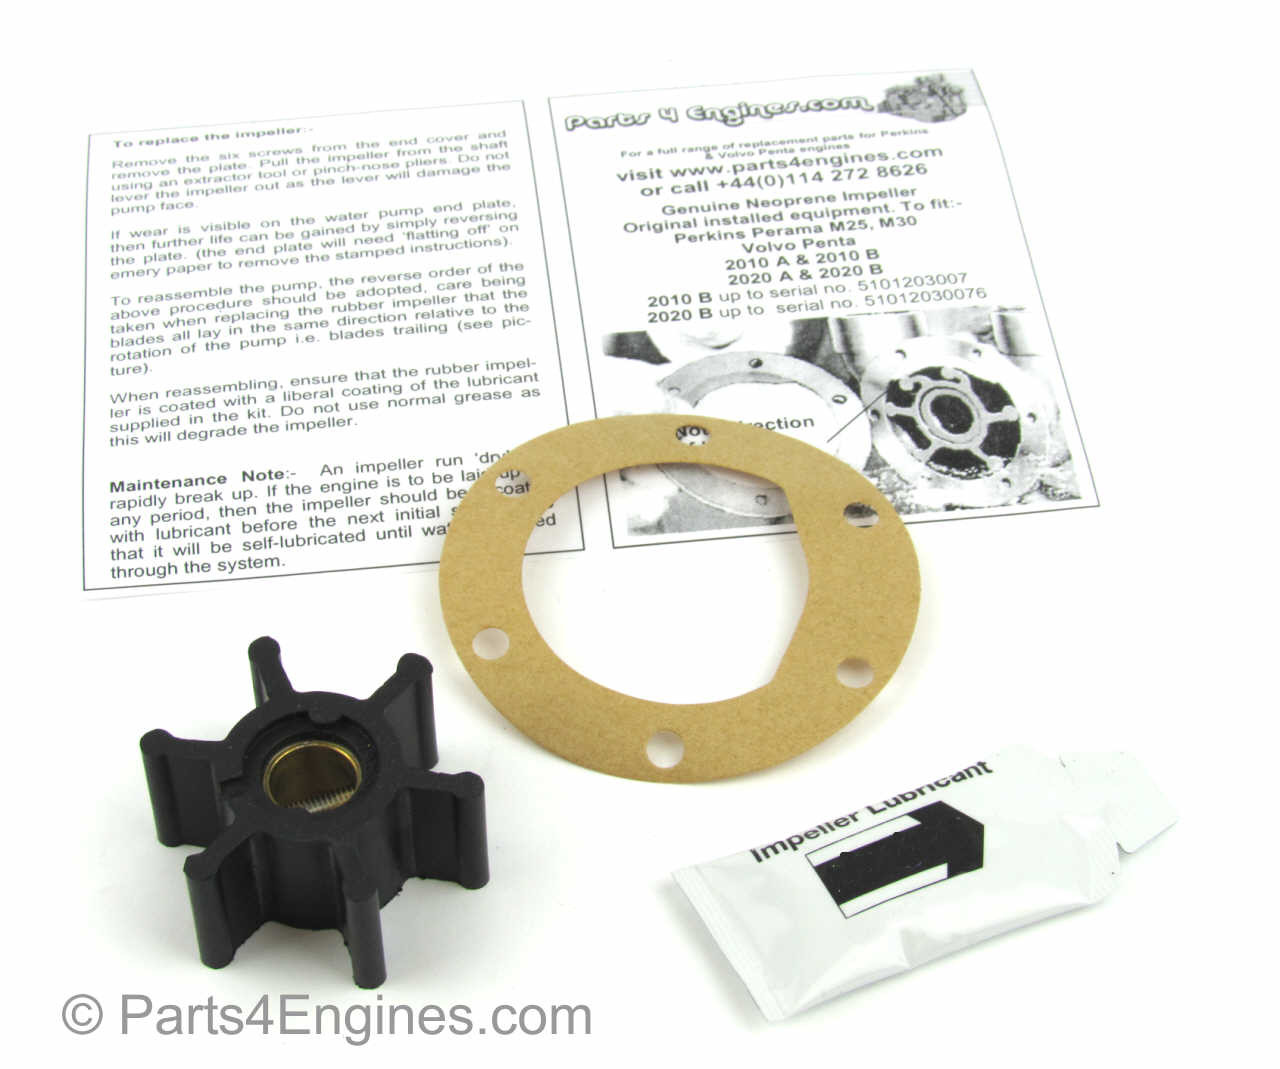 Perkins Perama M30 raw water pump impeller kit - parts4engines.com